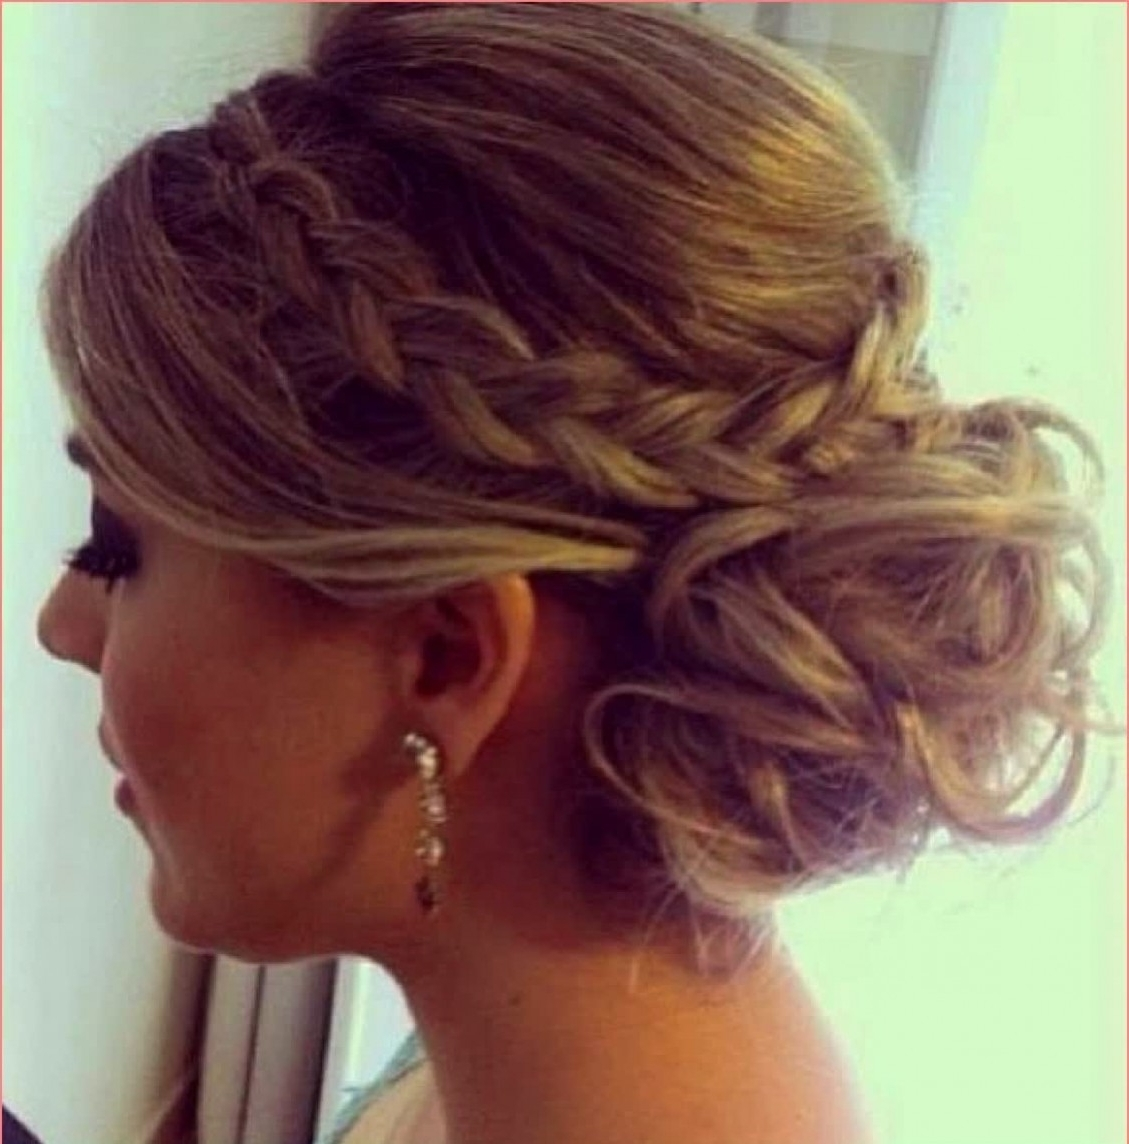 Cute Hairstyles Cute Updo Hairstyles For Graduation – Best . (View 7 of 15)